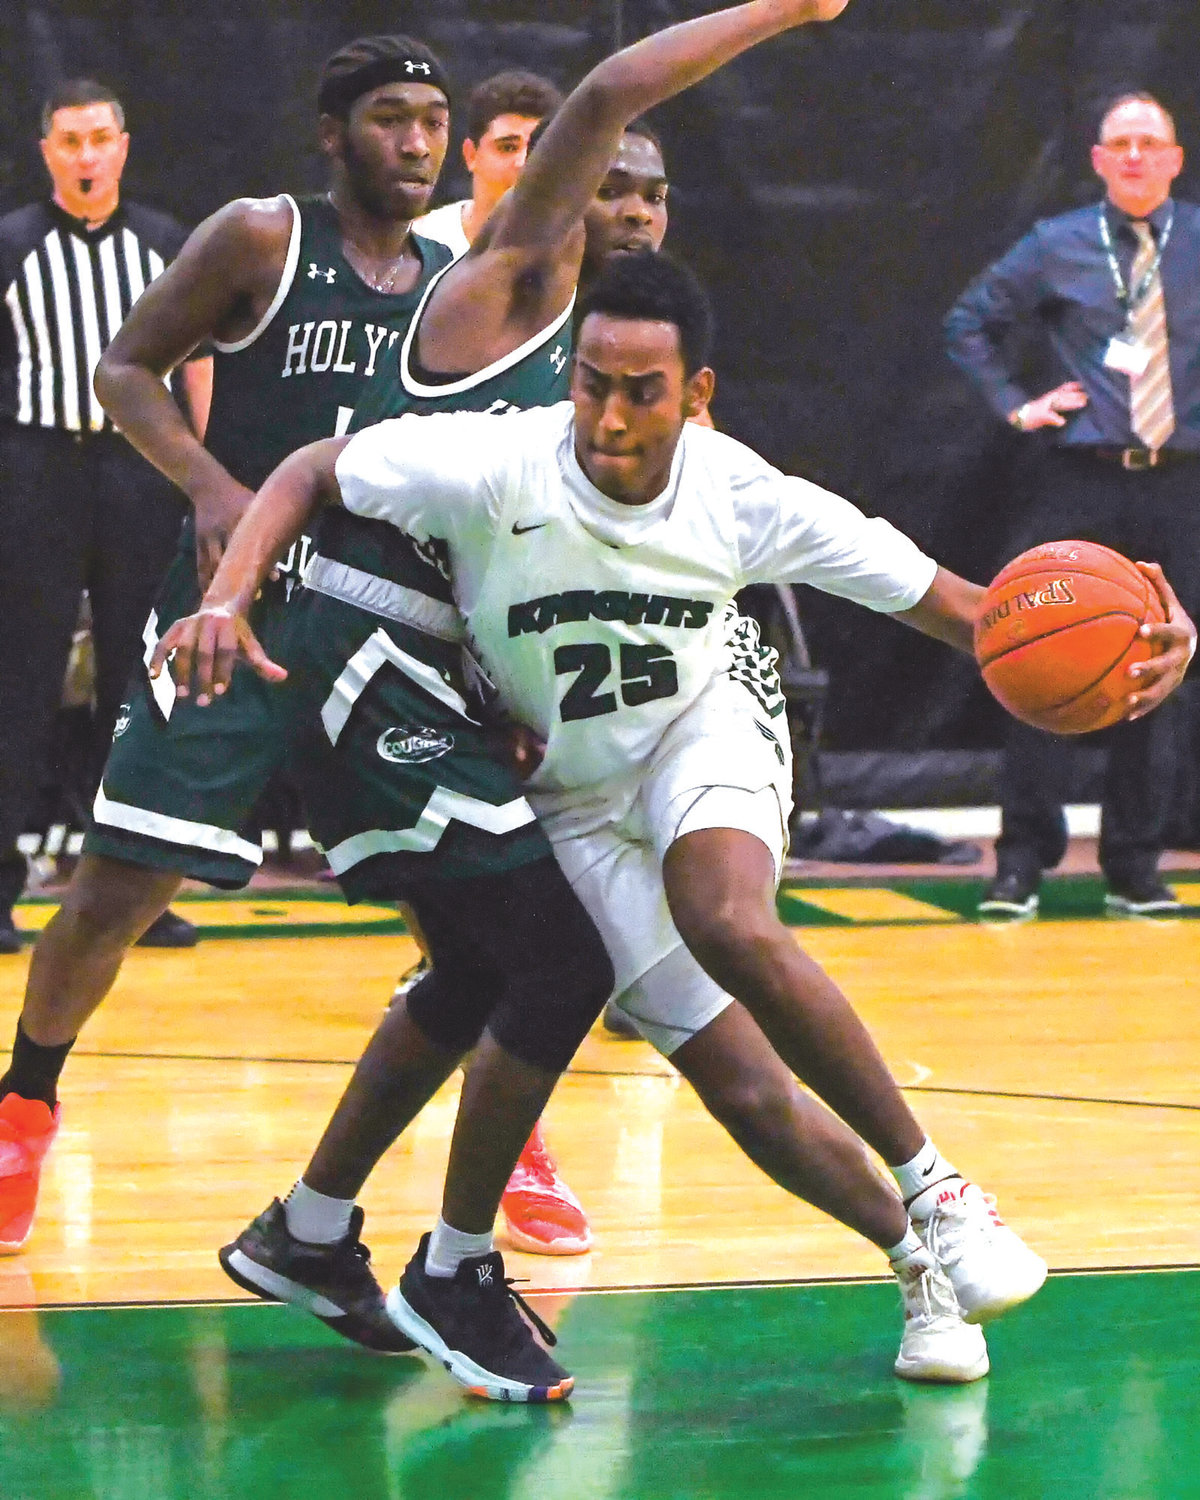 TOURNEY READY: CCRI's Bereket Janat works past a Holyoke defender last week.